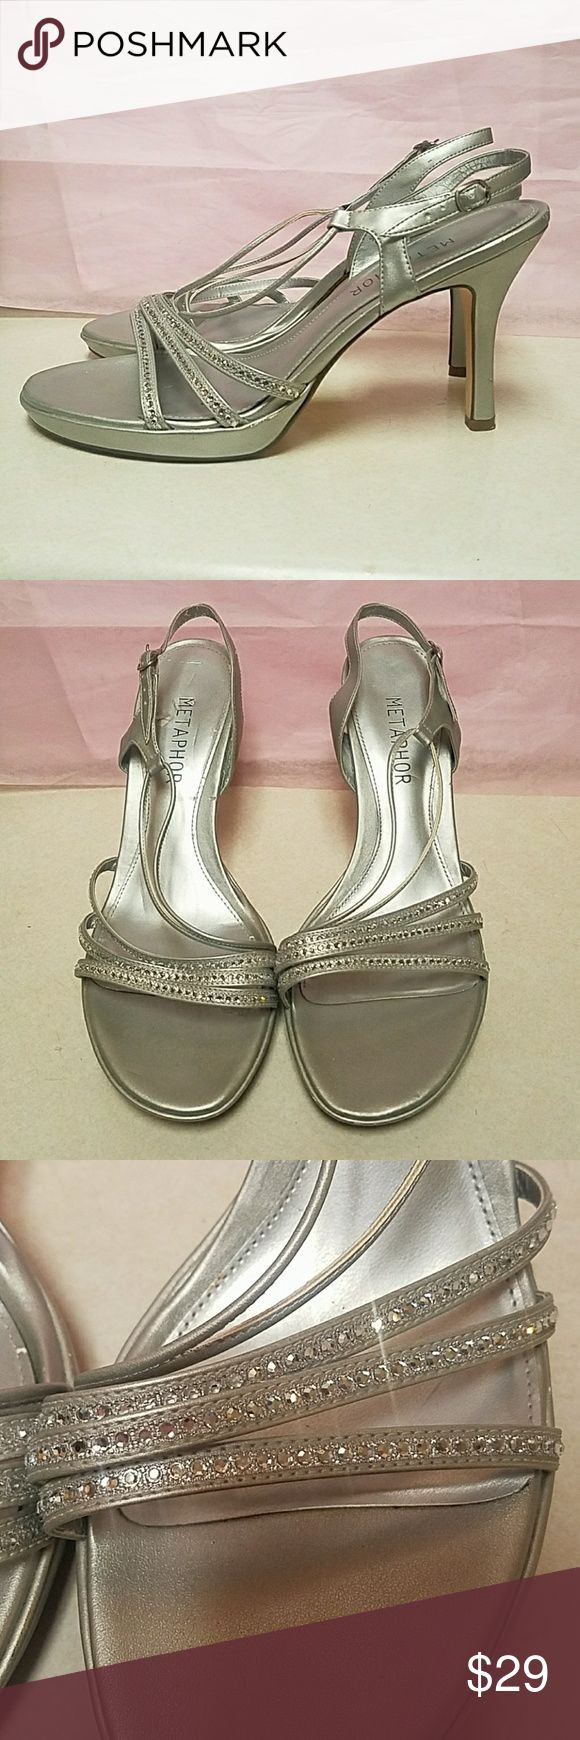 New Years Eve Silver Sparkly Bling Sandals SZ 10 These heels are gorgeous and in great condition. Perfect for holiday parties including cocktail party,  Christmas party or New Years Eve party. Also ready for date night, girls night out, or Vegas weekend! 4 inch Heels will look great with evening dress, cocktail dress, or skinny jeans. Size 10. Save 10% on all bundles.  I ship daily! Shoes Heels